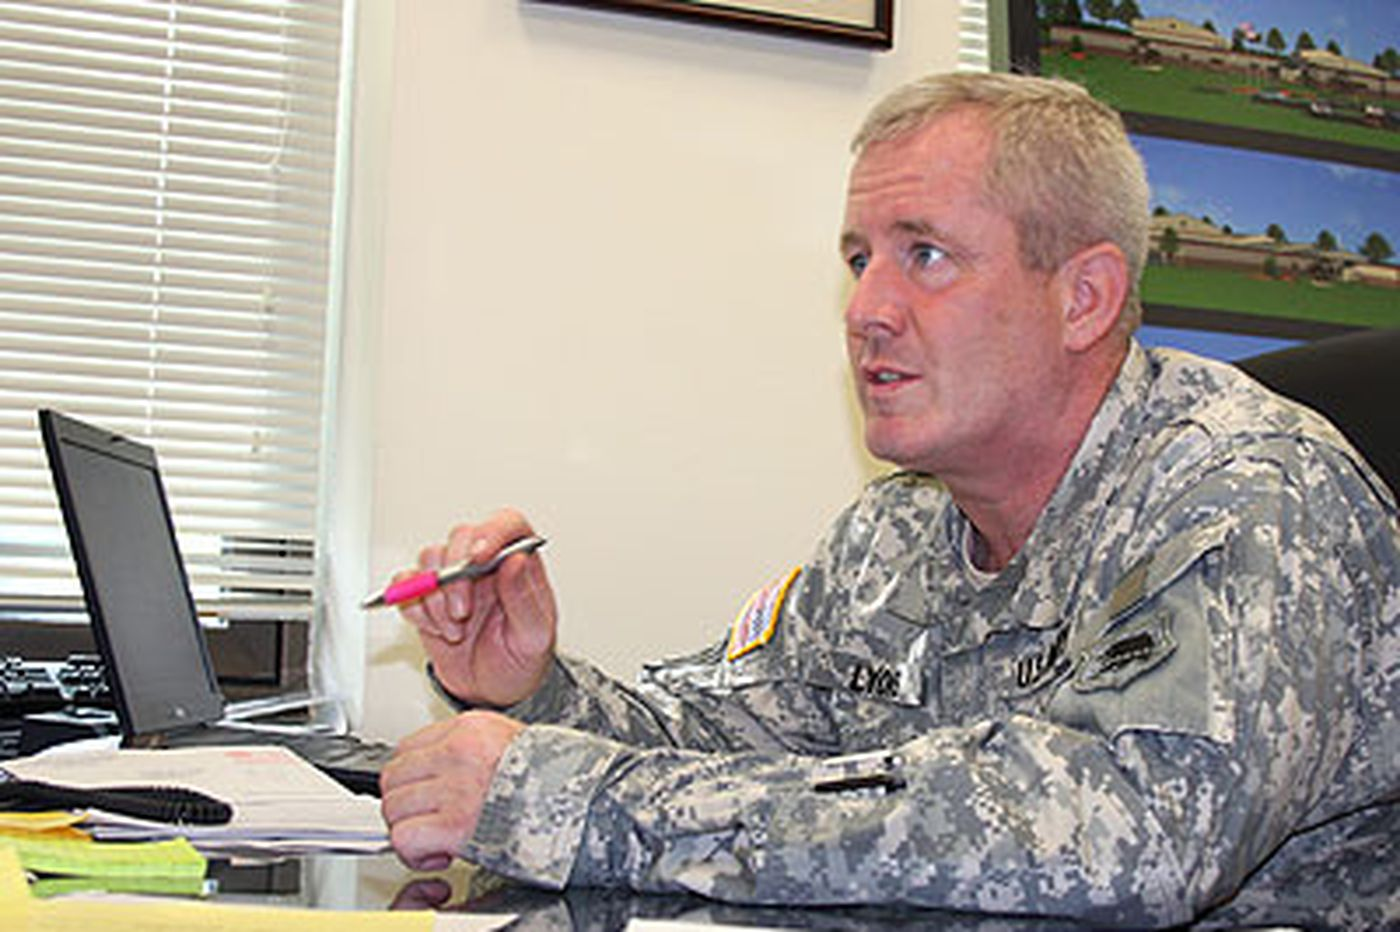 Military enlistment a popular option during recession